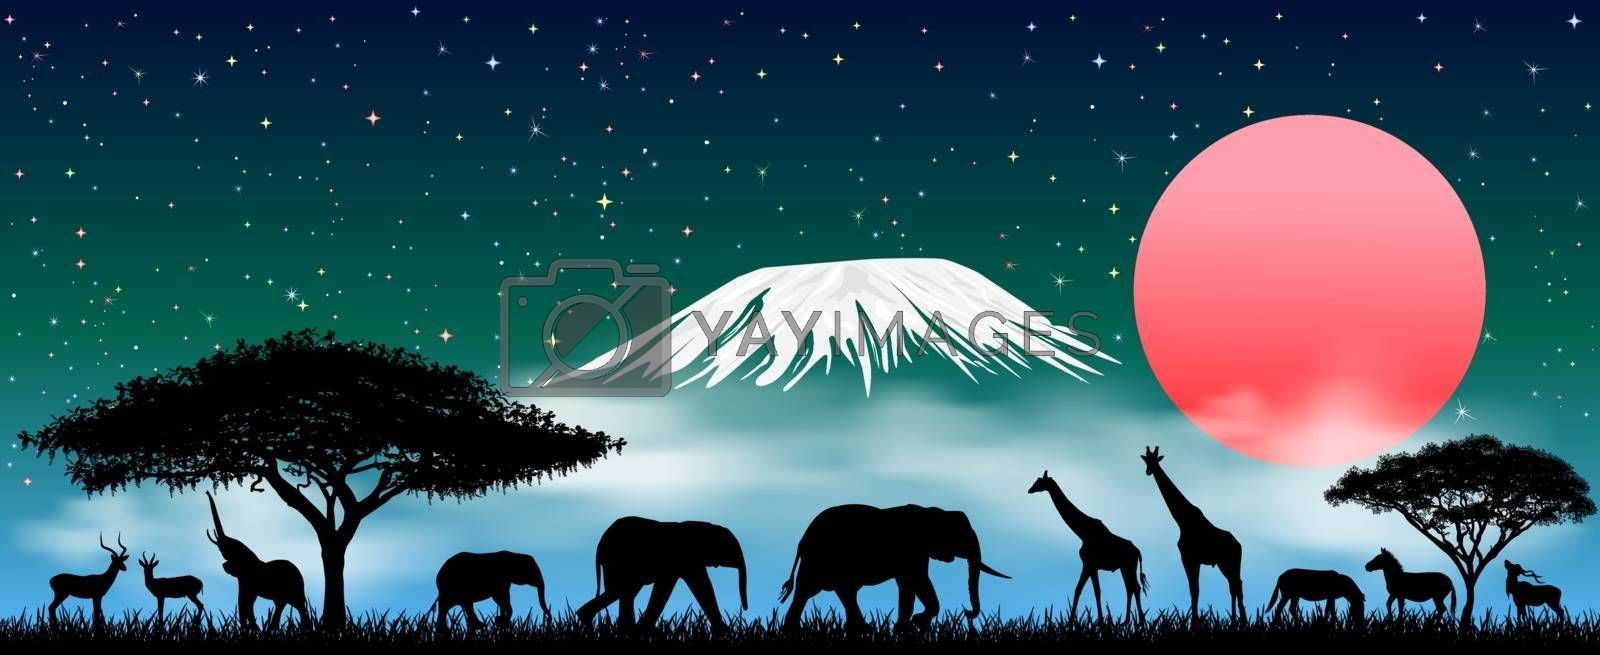 Silhouettes of wild animals of the African savanna. African animals at night against the backdrop of Mount Kilimanjaro. Starry sky and clouds.